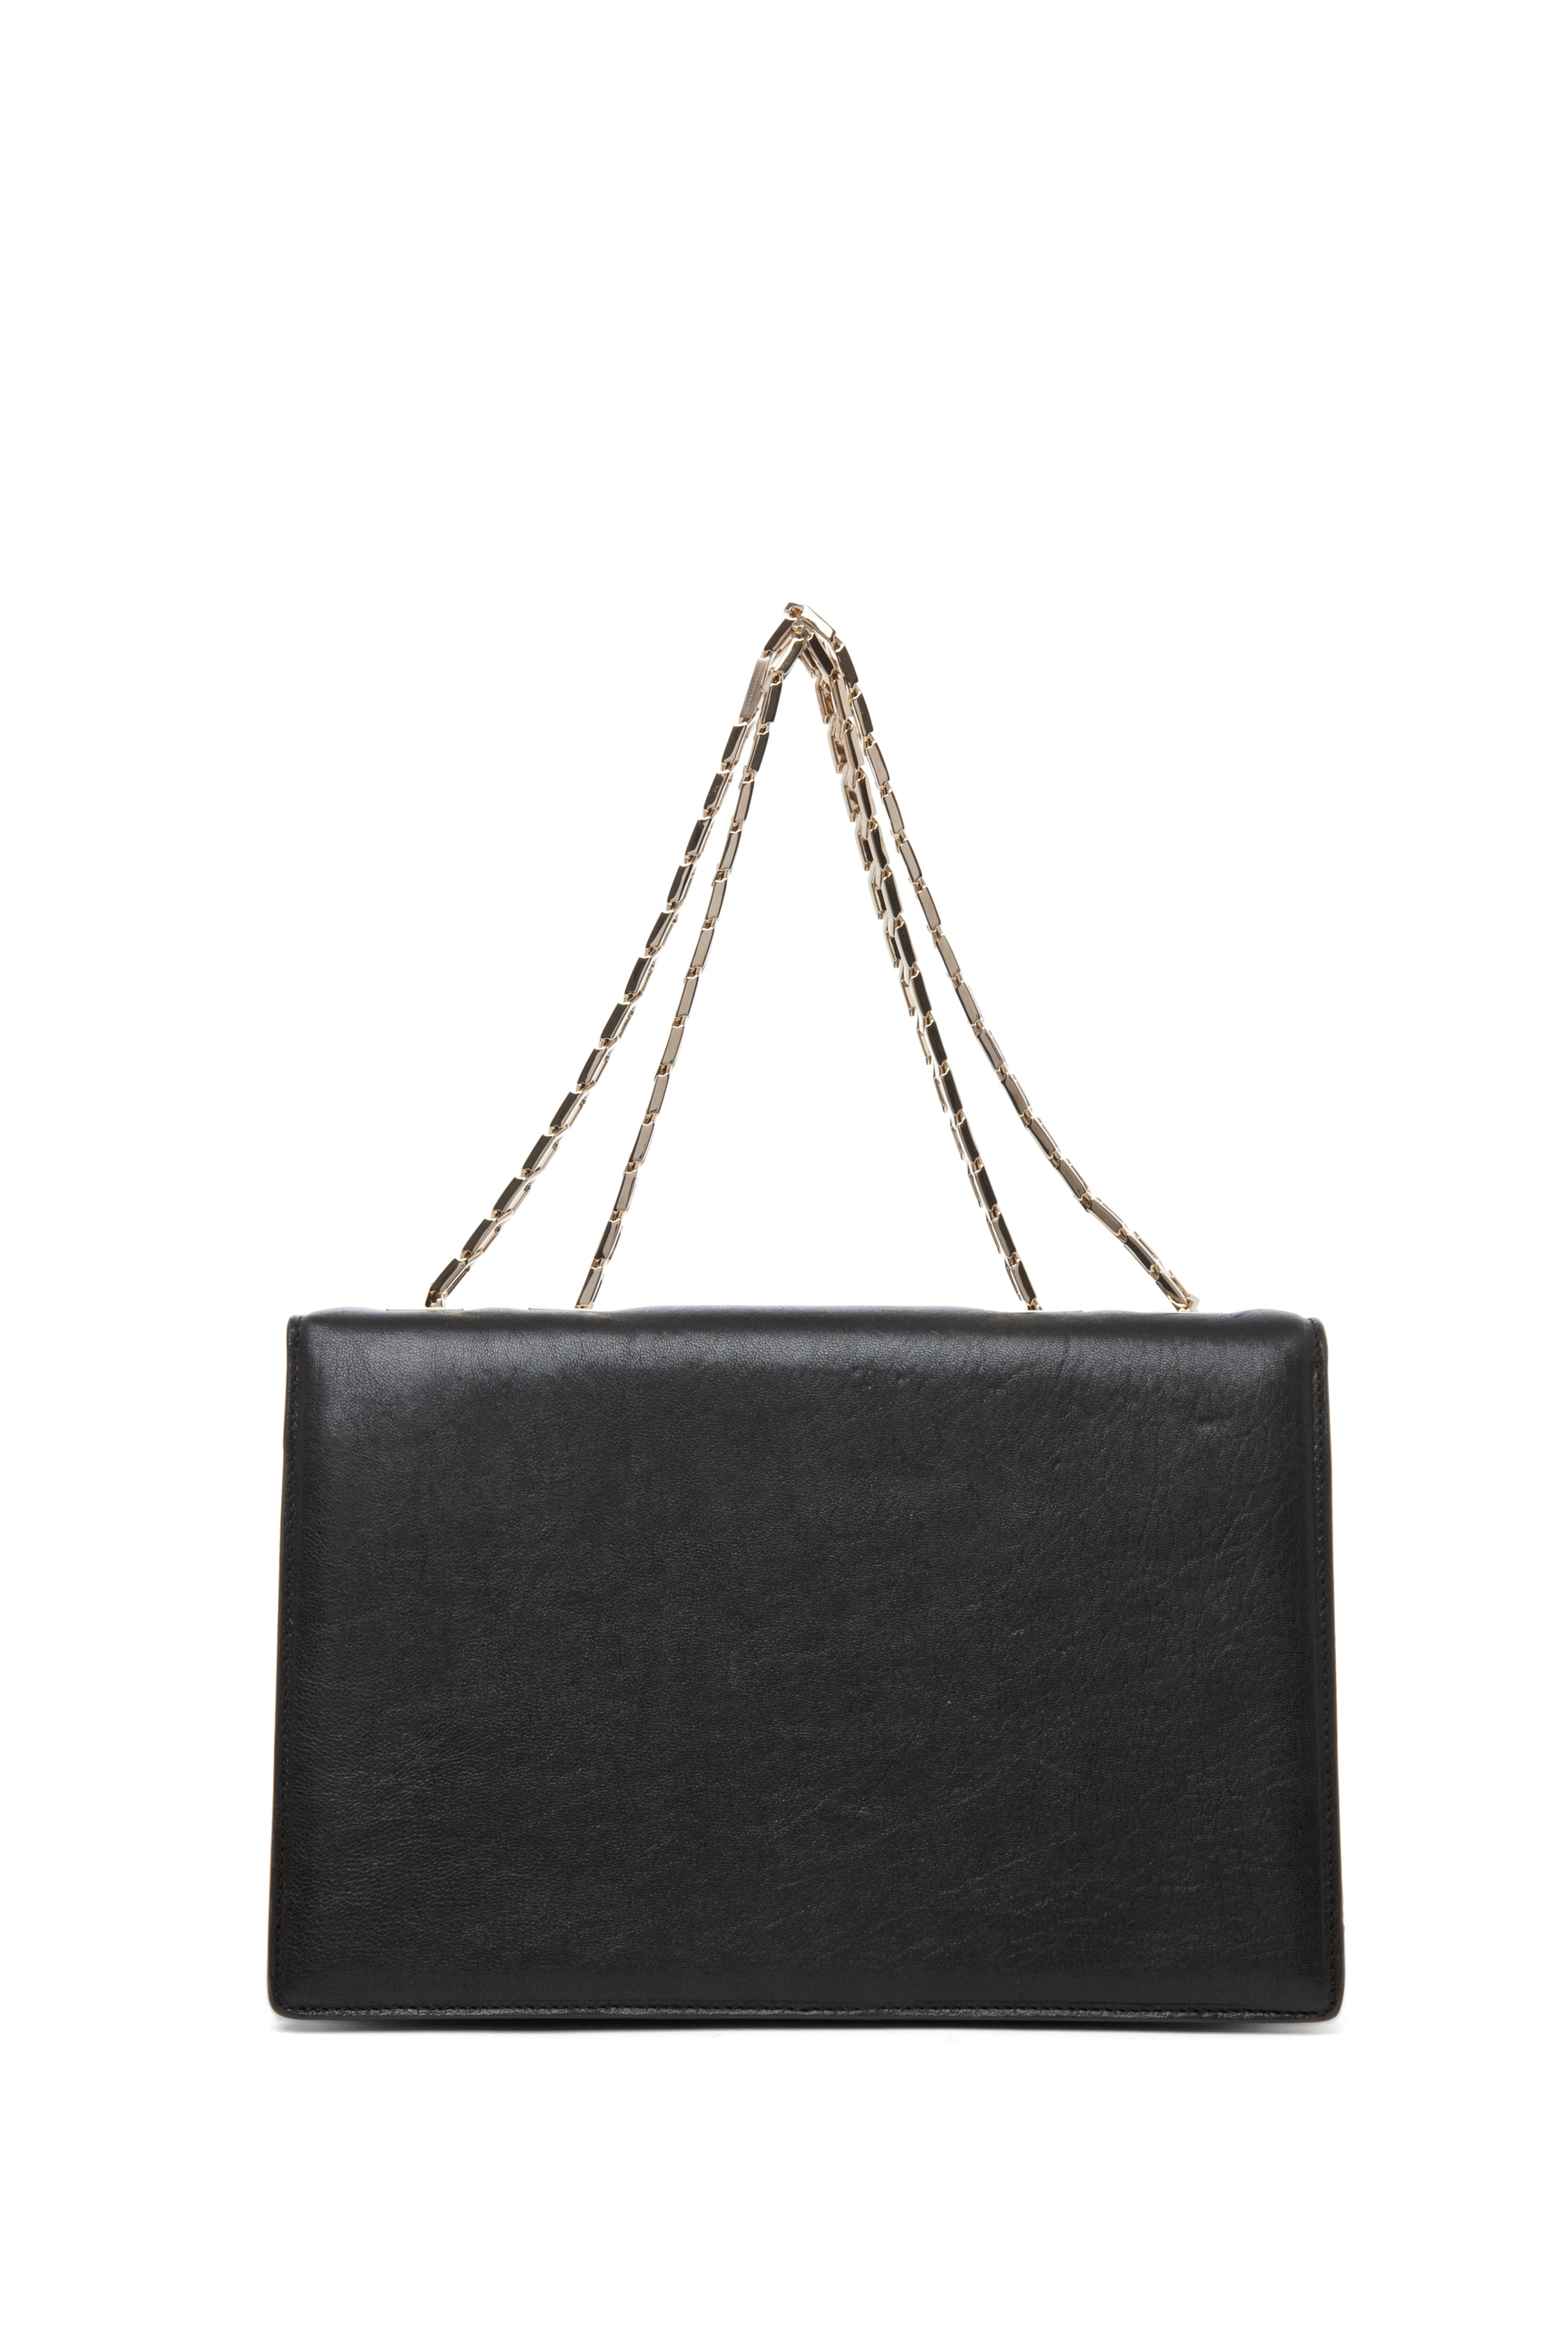 Image 2 of Victoria Beckham Hexagonal Chain Bag in Black